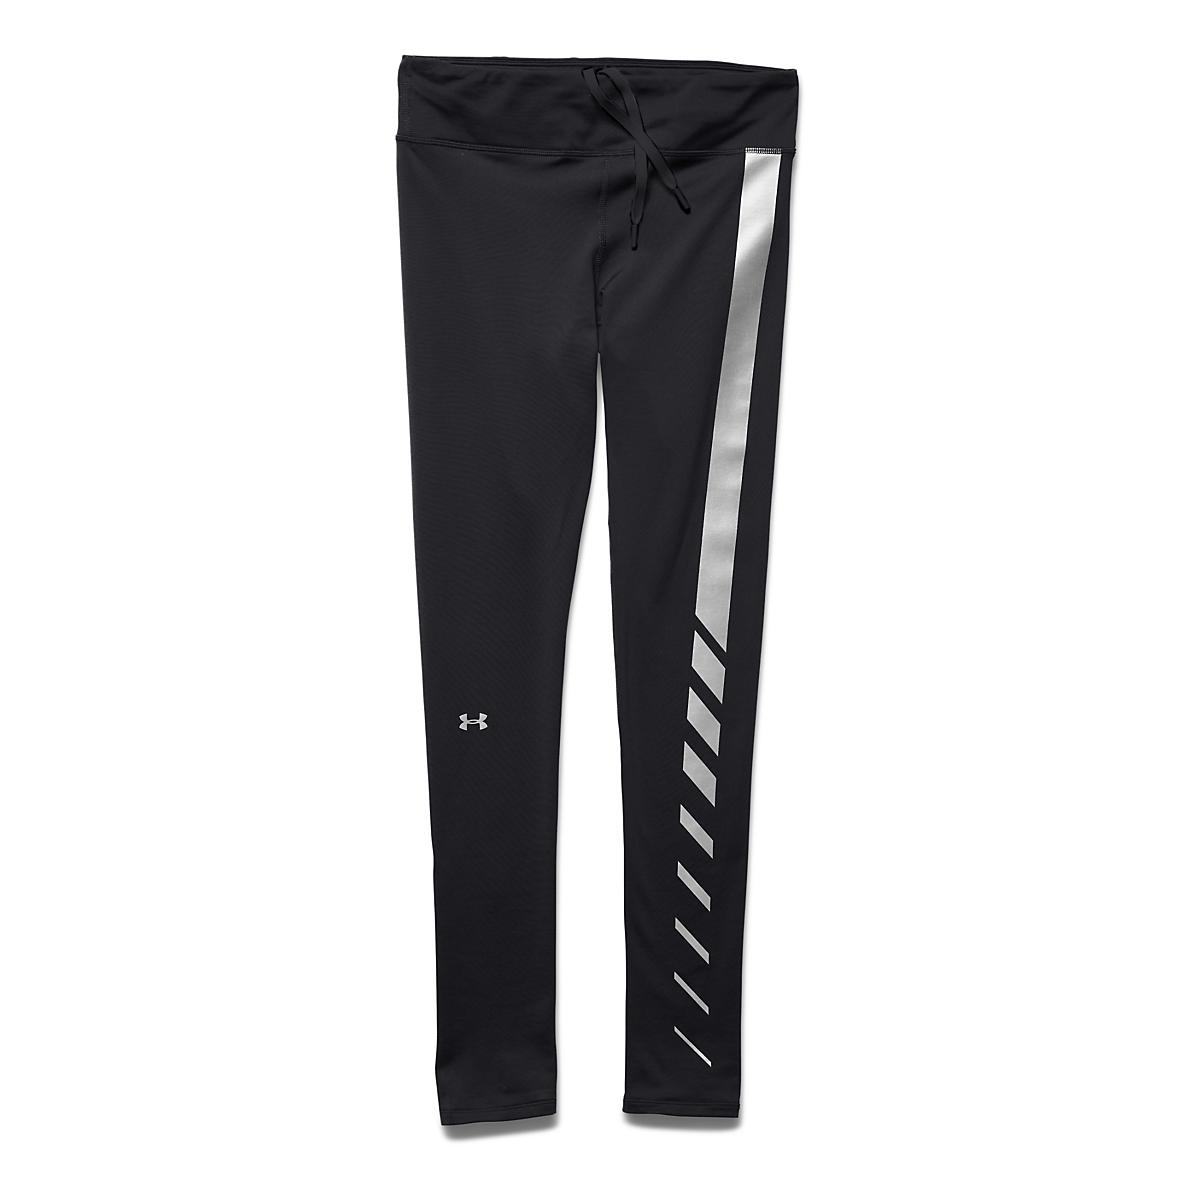 Women's Under Armour�Aerial Speed Illumination Legging